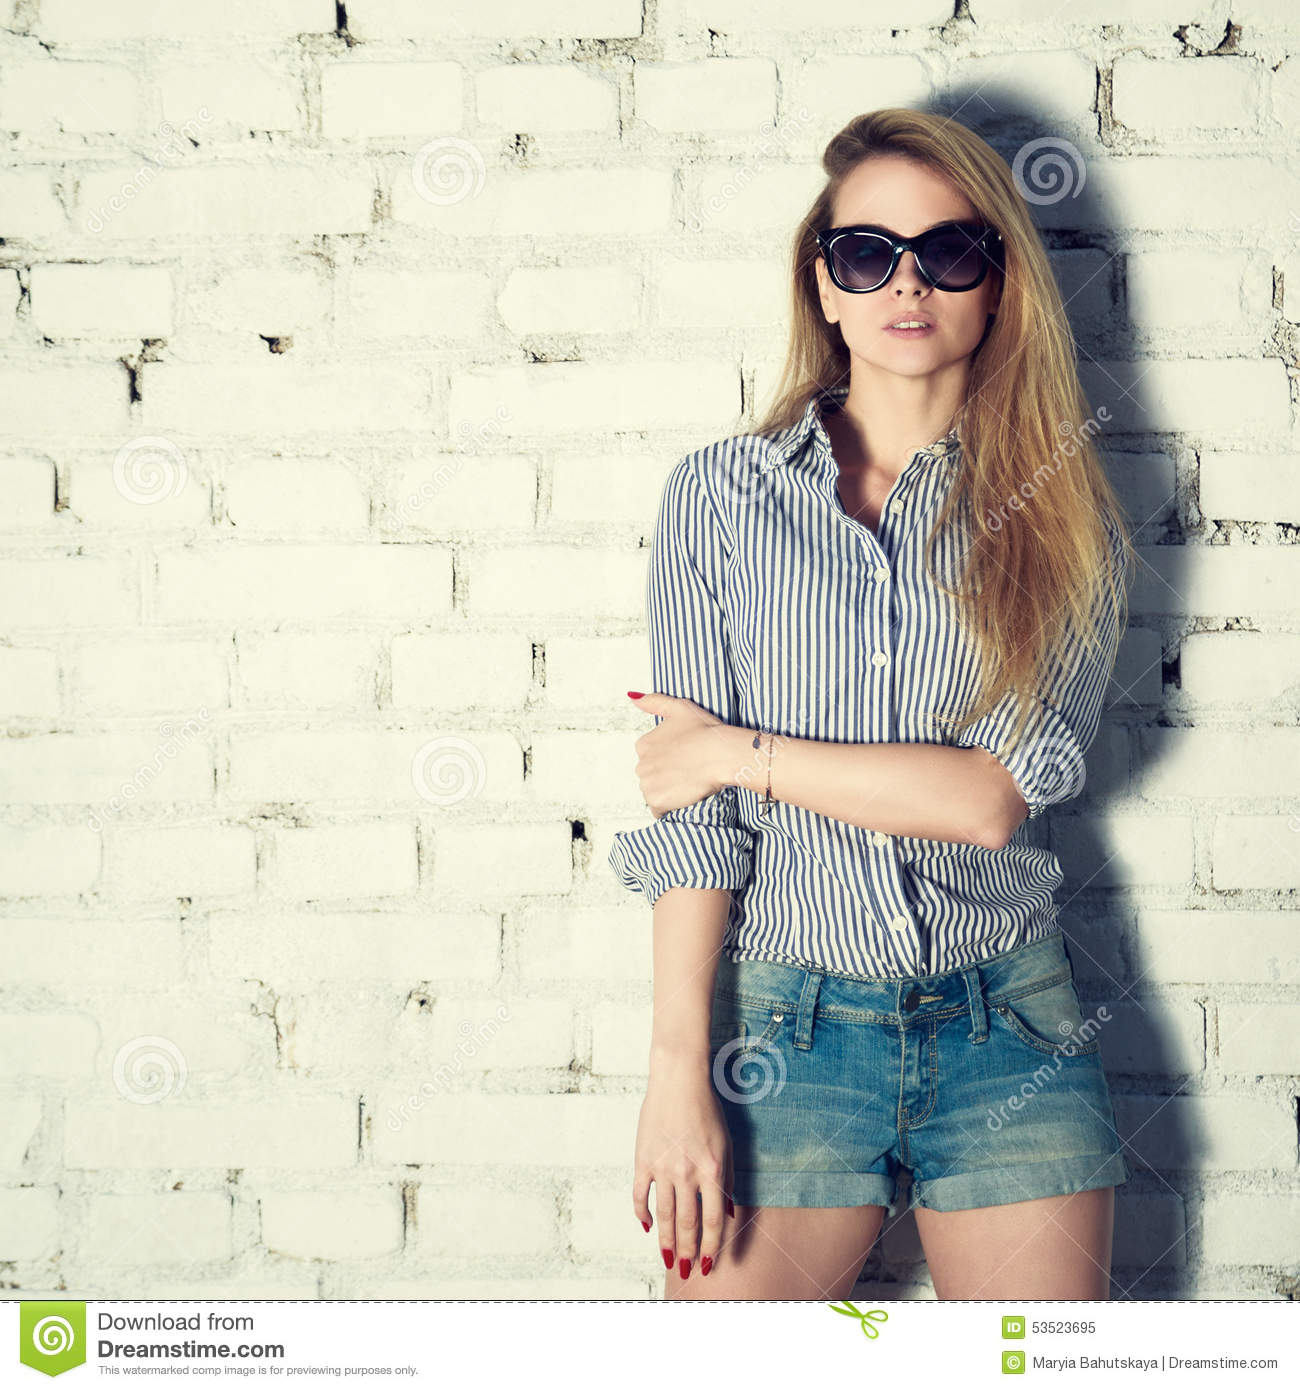 Hipster Fashion Photography: Fashion Photo Of Hipster Woman At Brick Wall Stock Photo